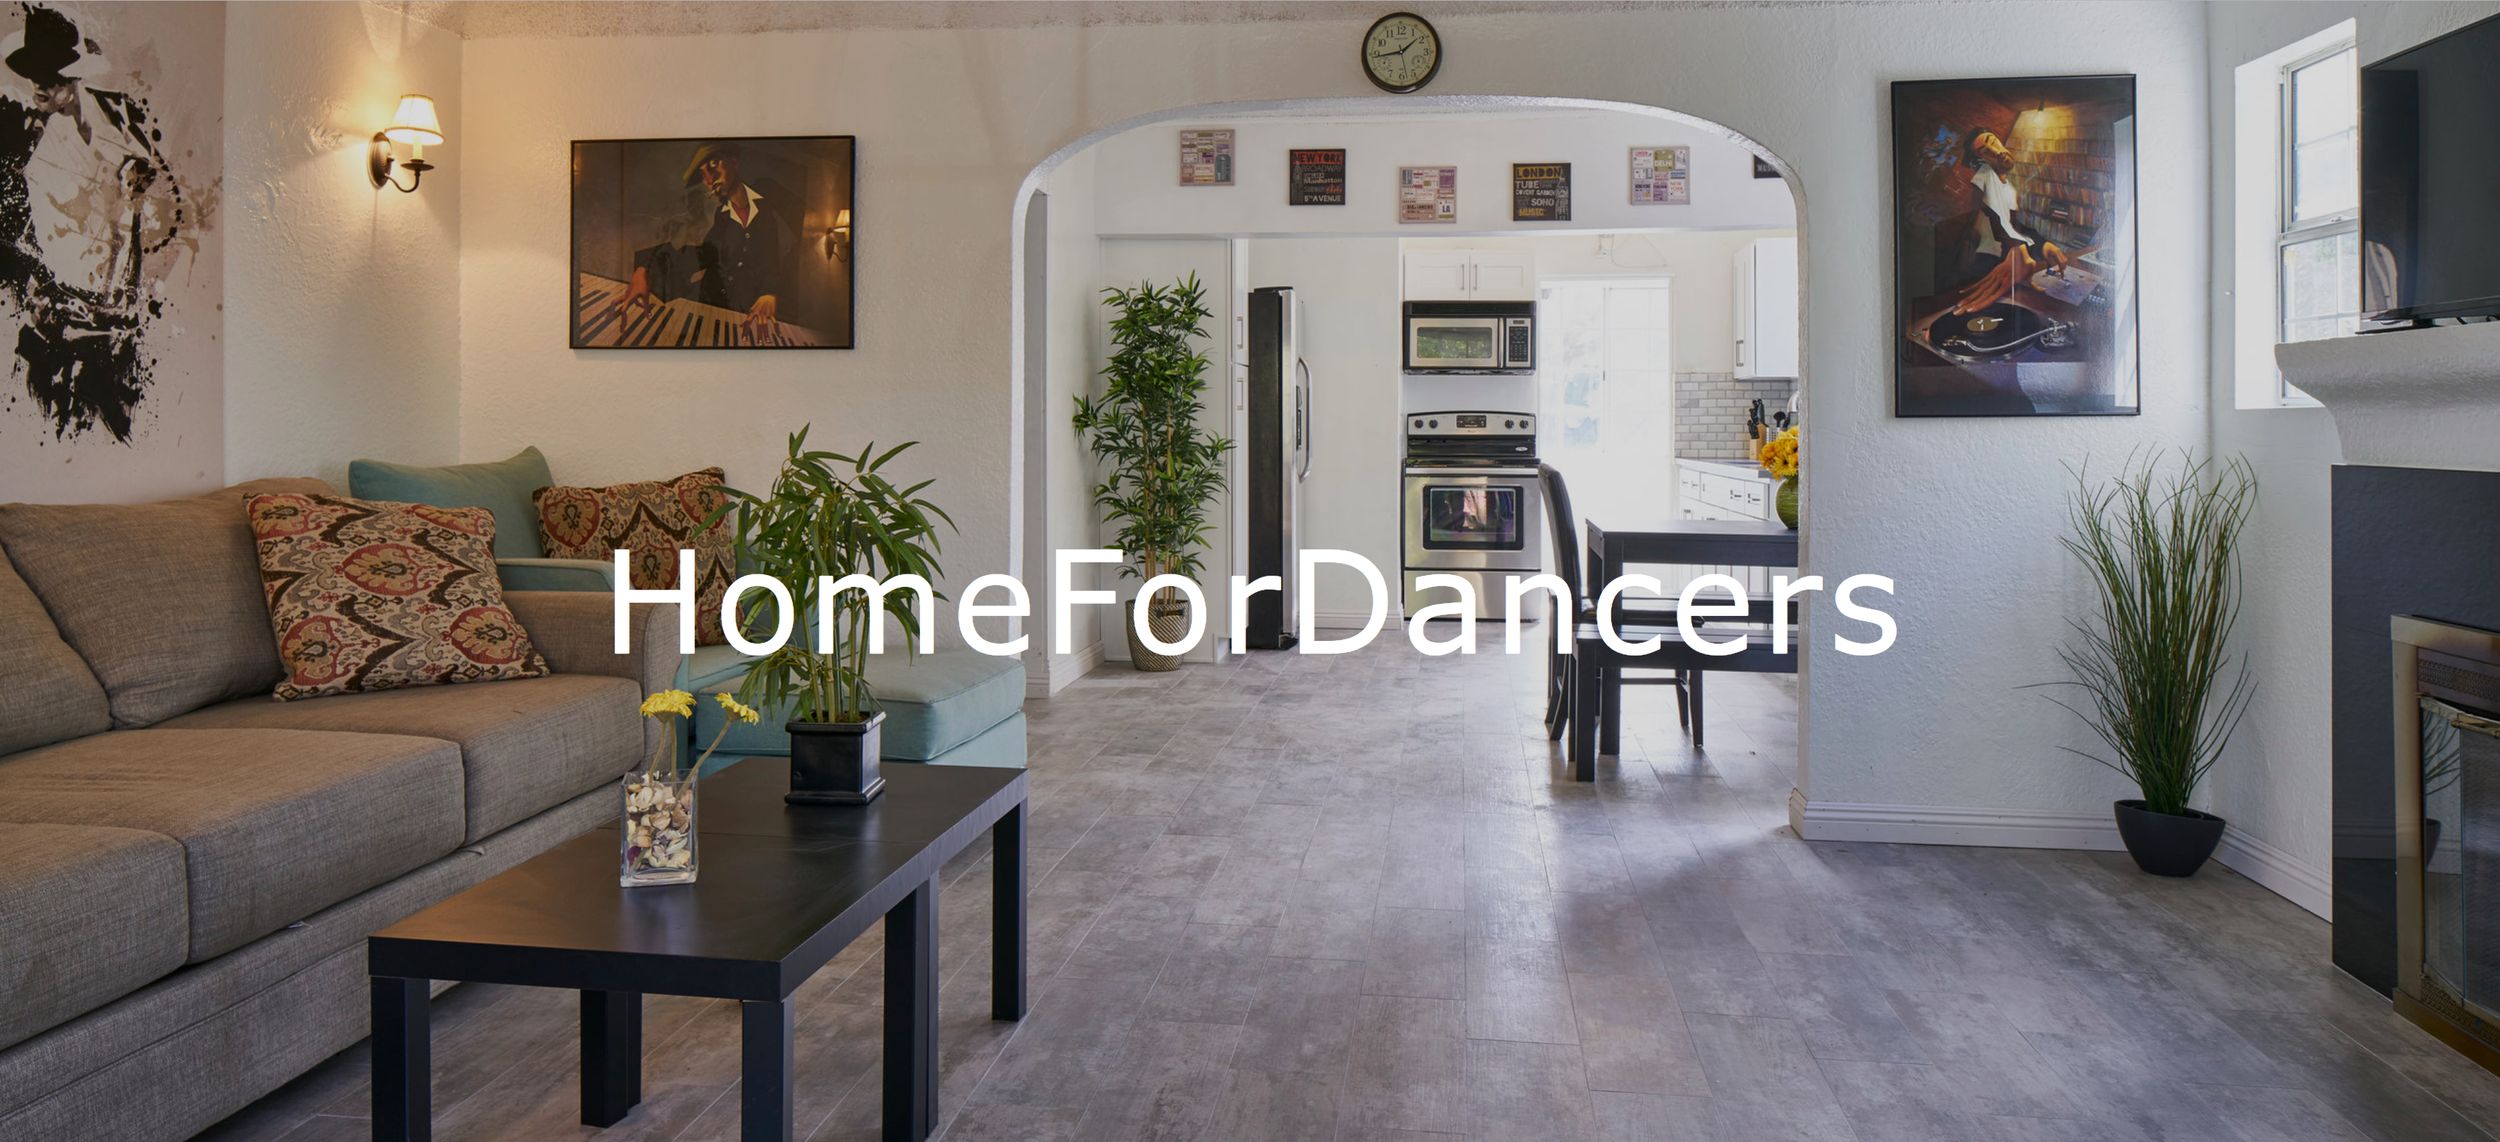 Home For Dancers - We offer shared bedrooms, as well as exclusive studio suites with built-in kitchenettes, private bathrooms & closets, and private parking and bike-rentals.